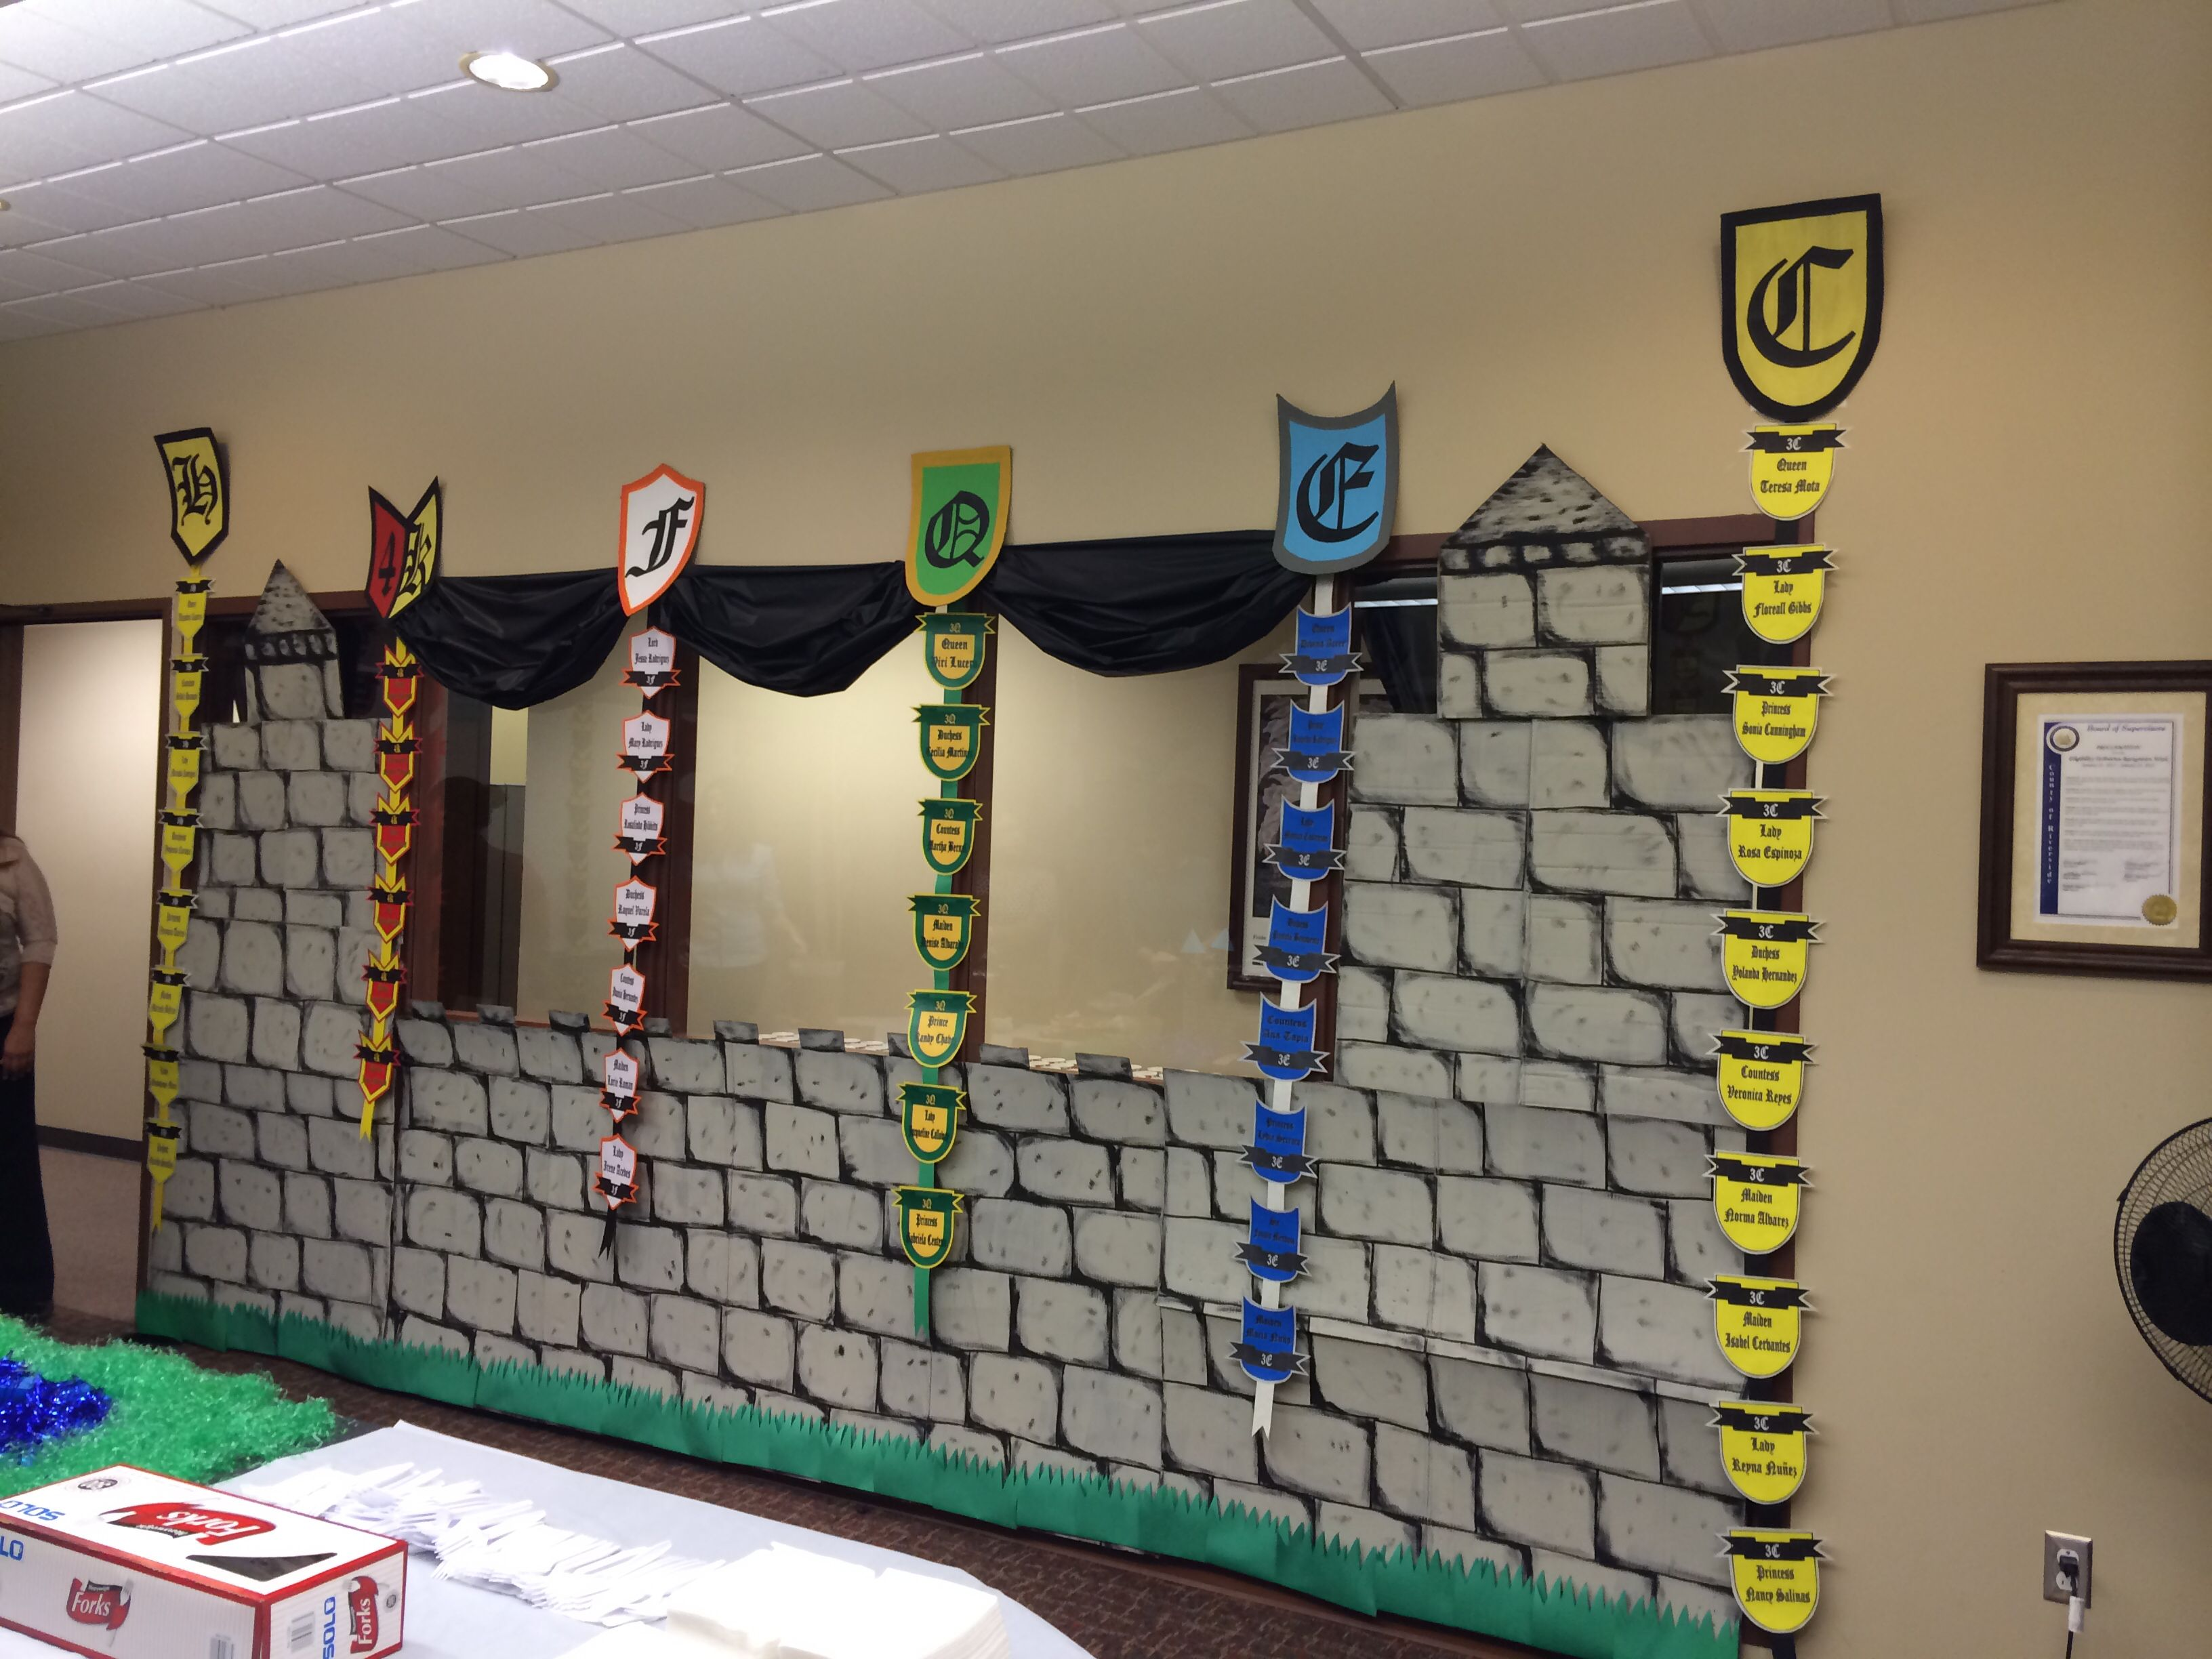 Medieval Times Themed Decorations All For Books Wall Divided Into